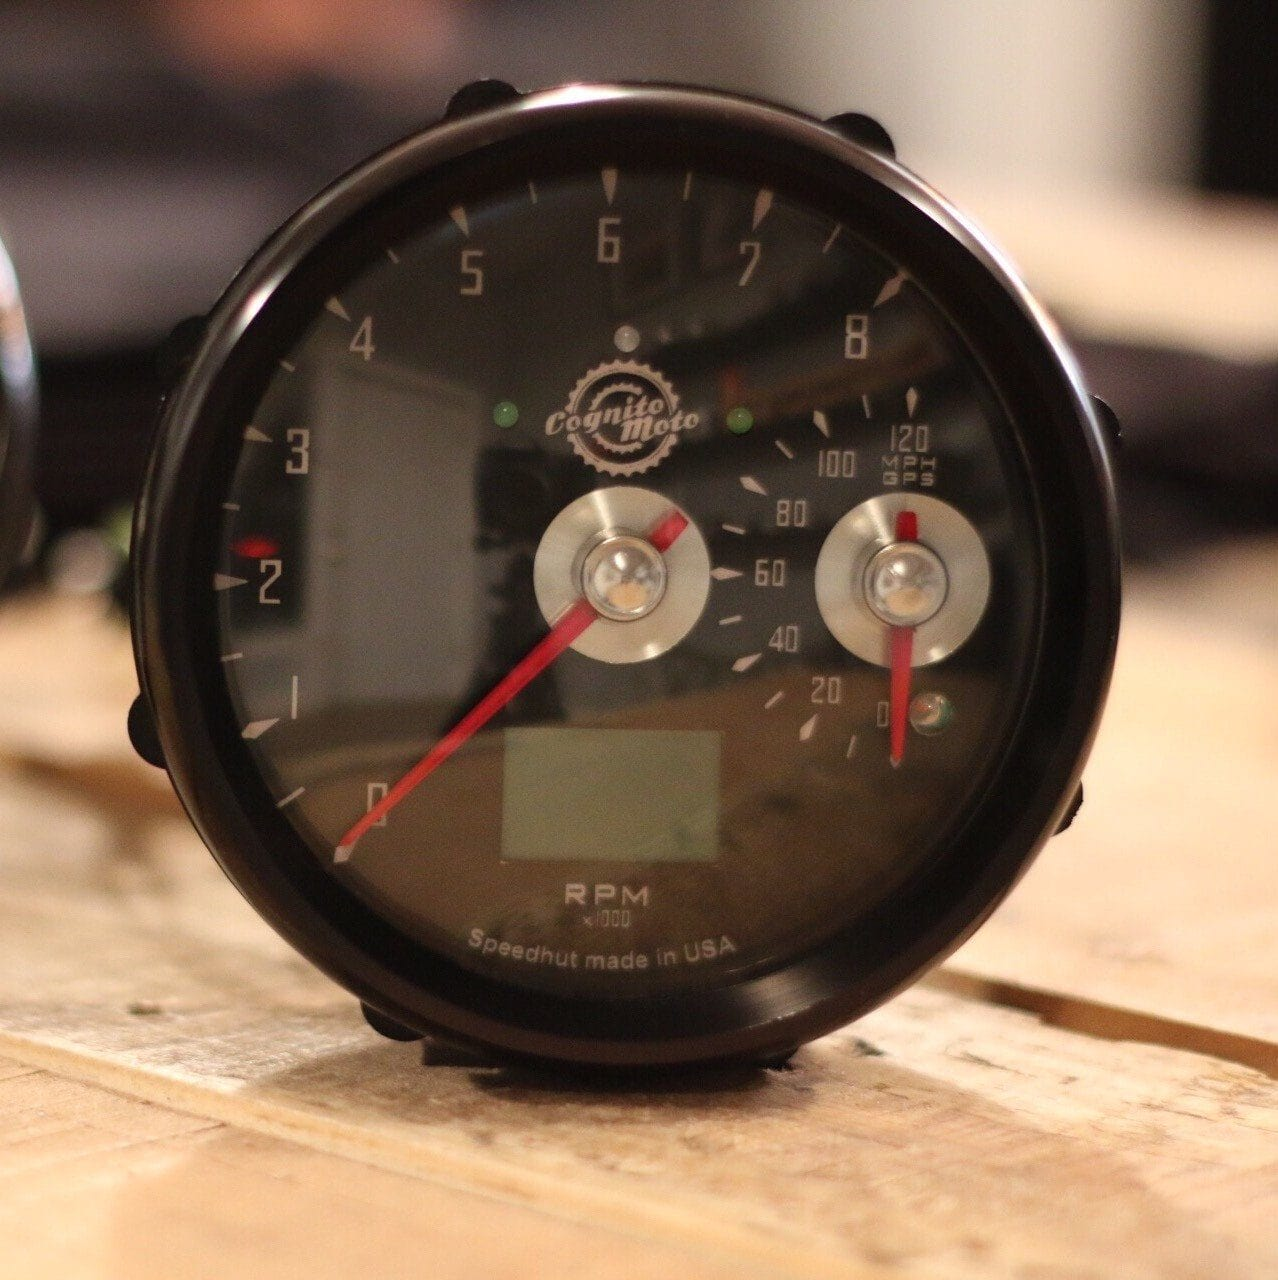 Cognito Moto GPS Speedo and large Tach